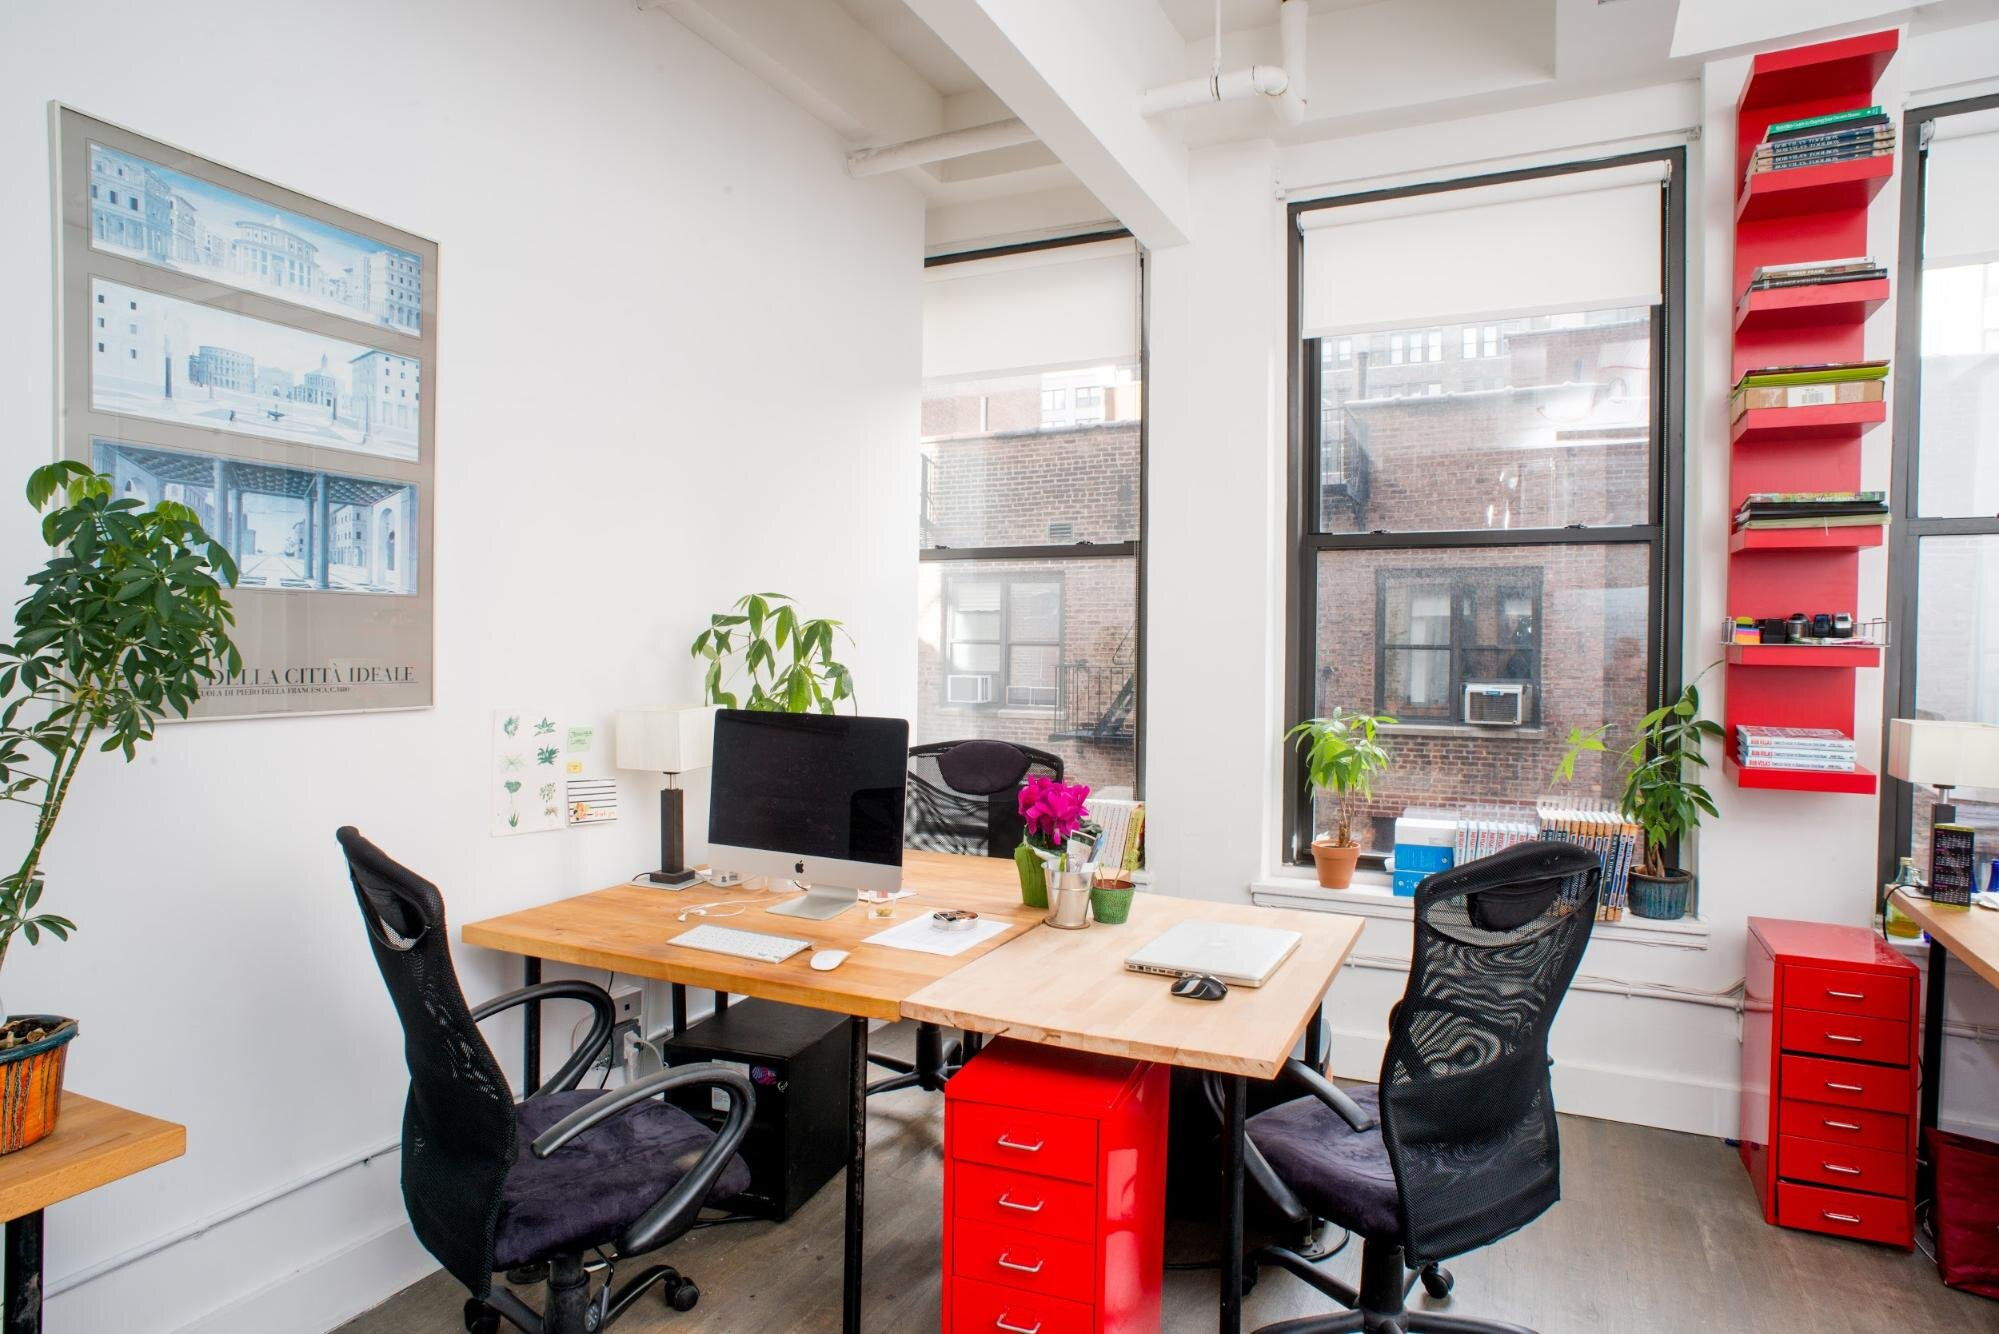 Dedicated workspace for learning how to work from home